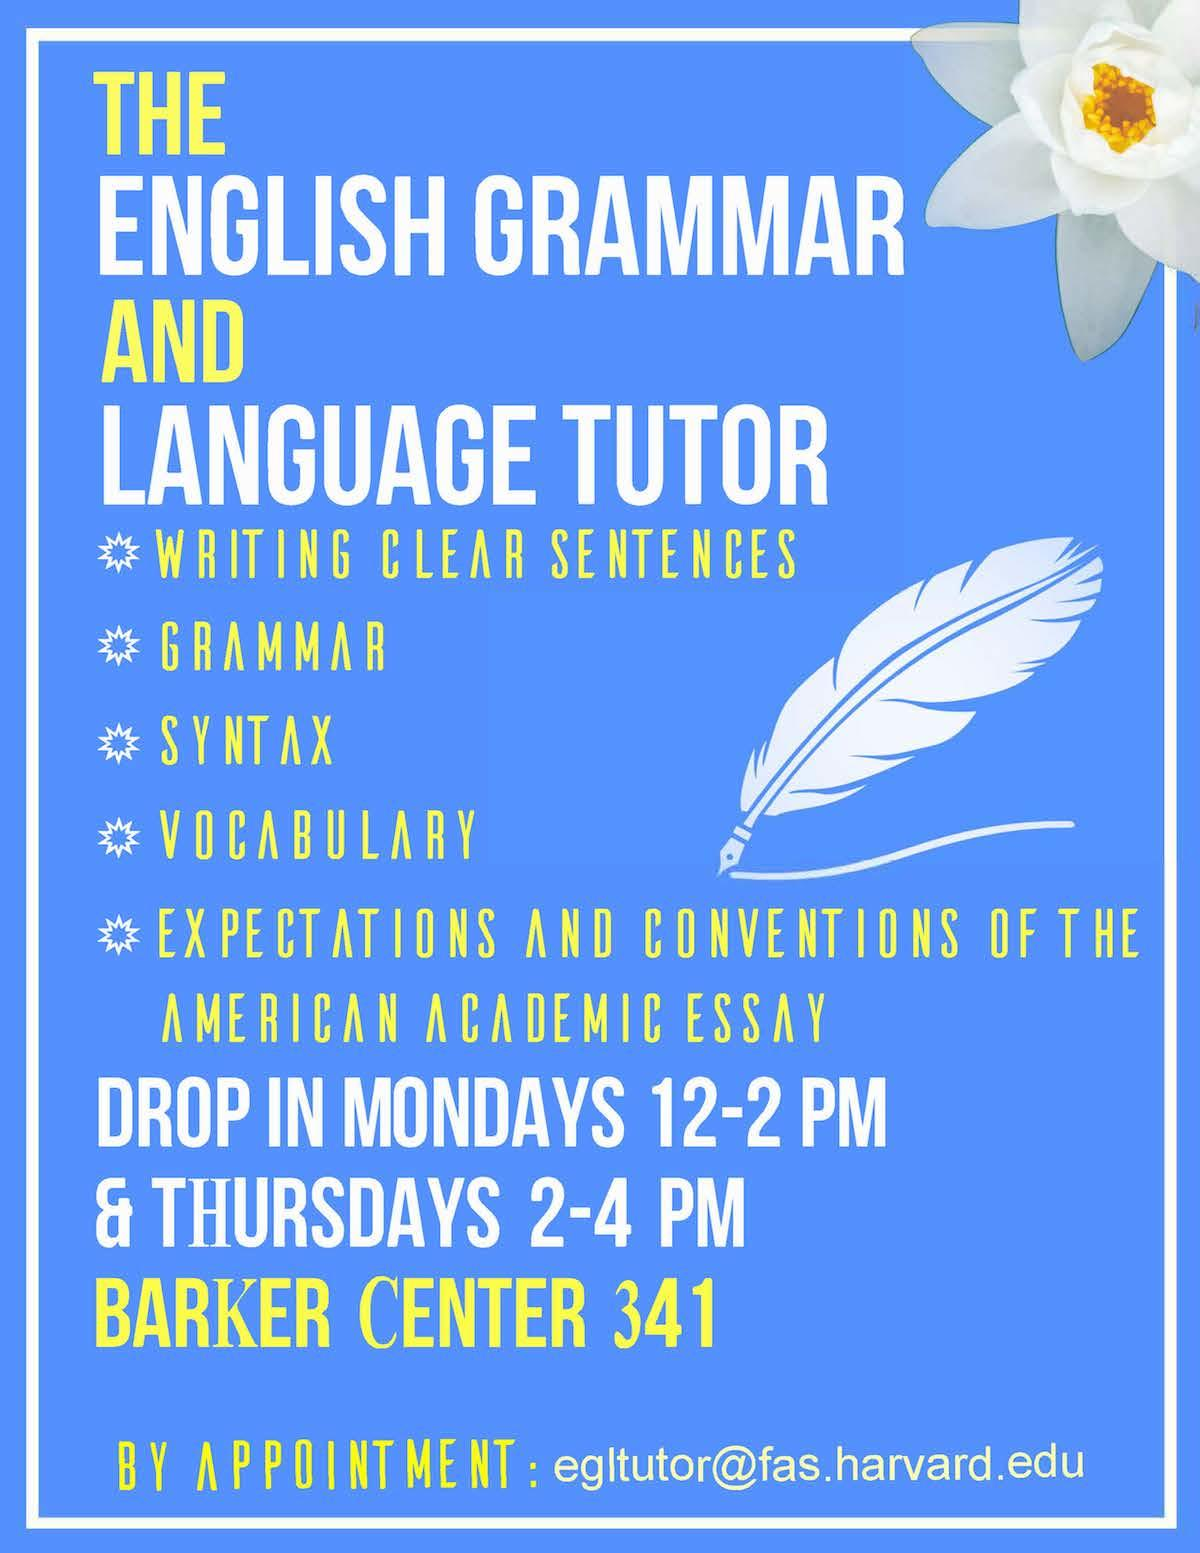 harvard college writing center egl flyer